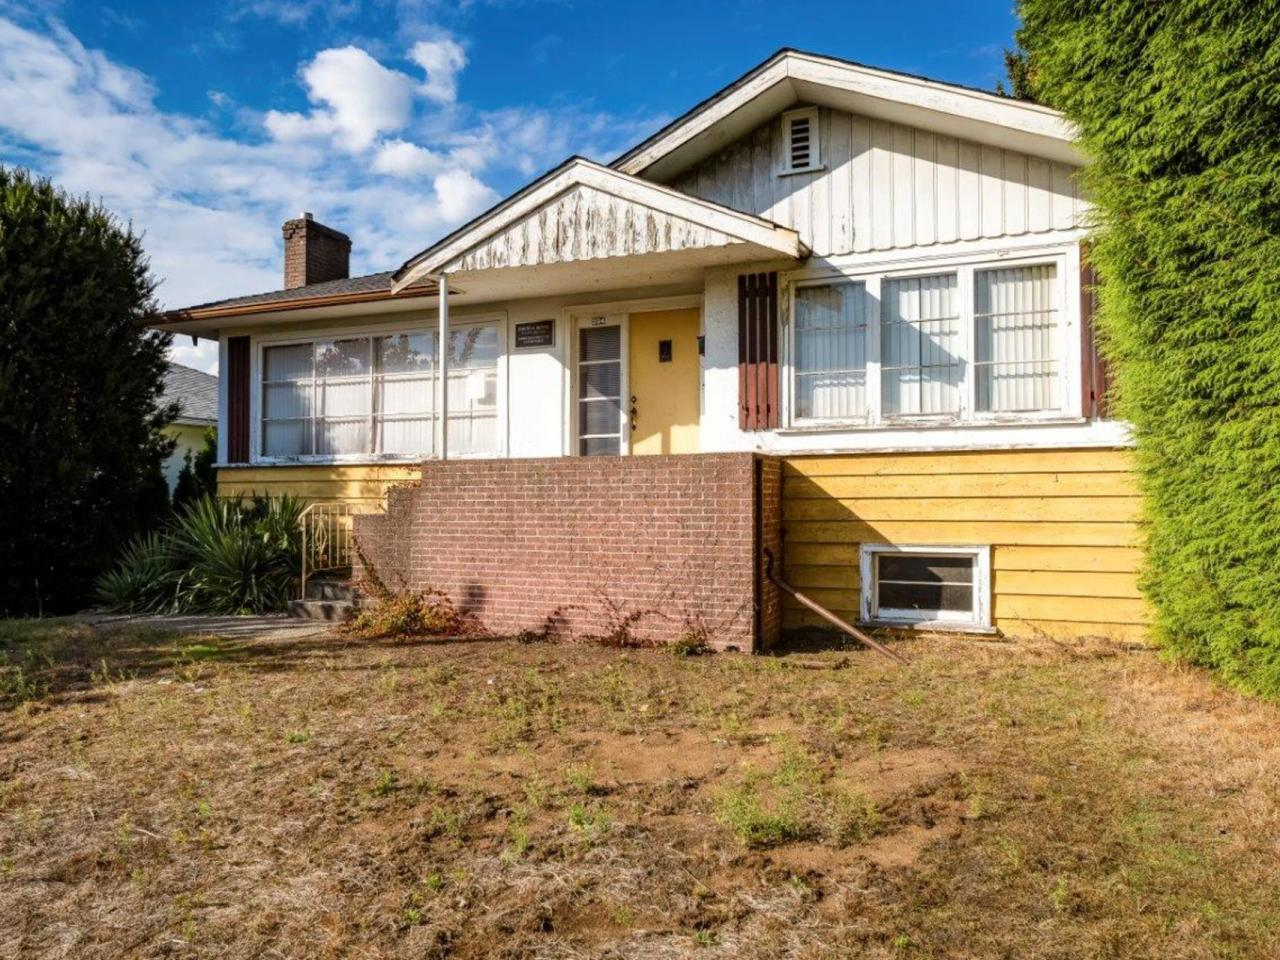 334 West 15th Street, Central Lonsdale, North Vancouver